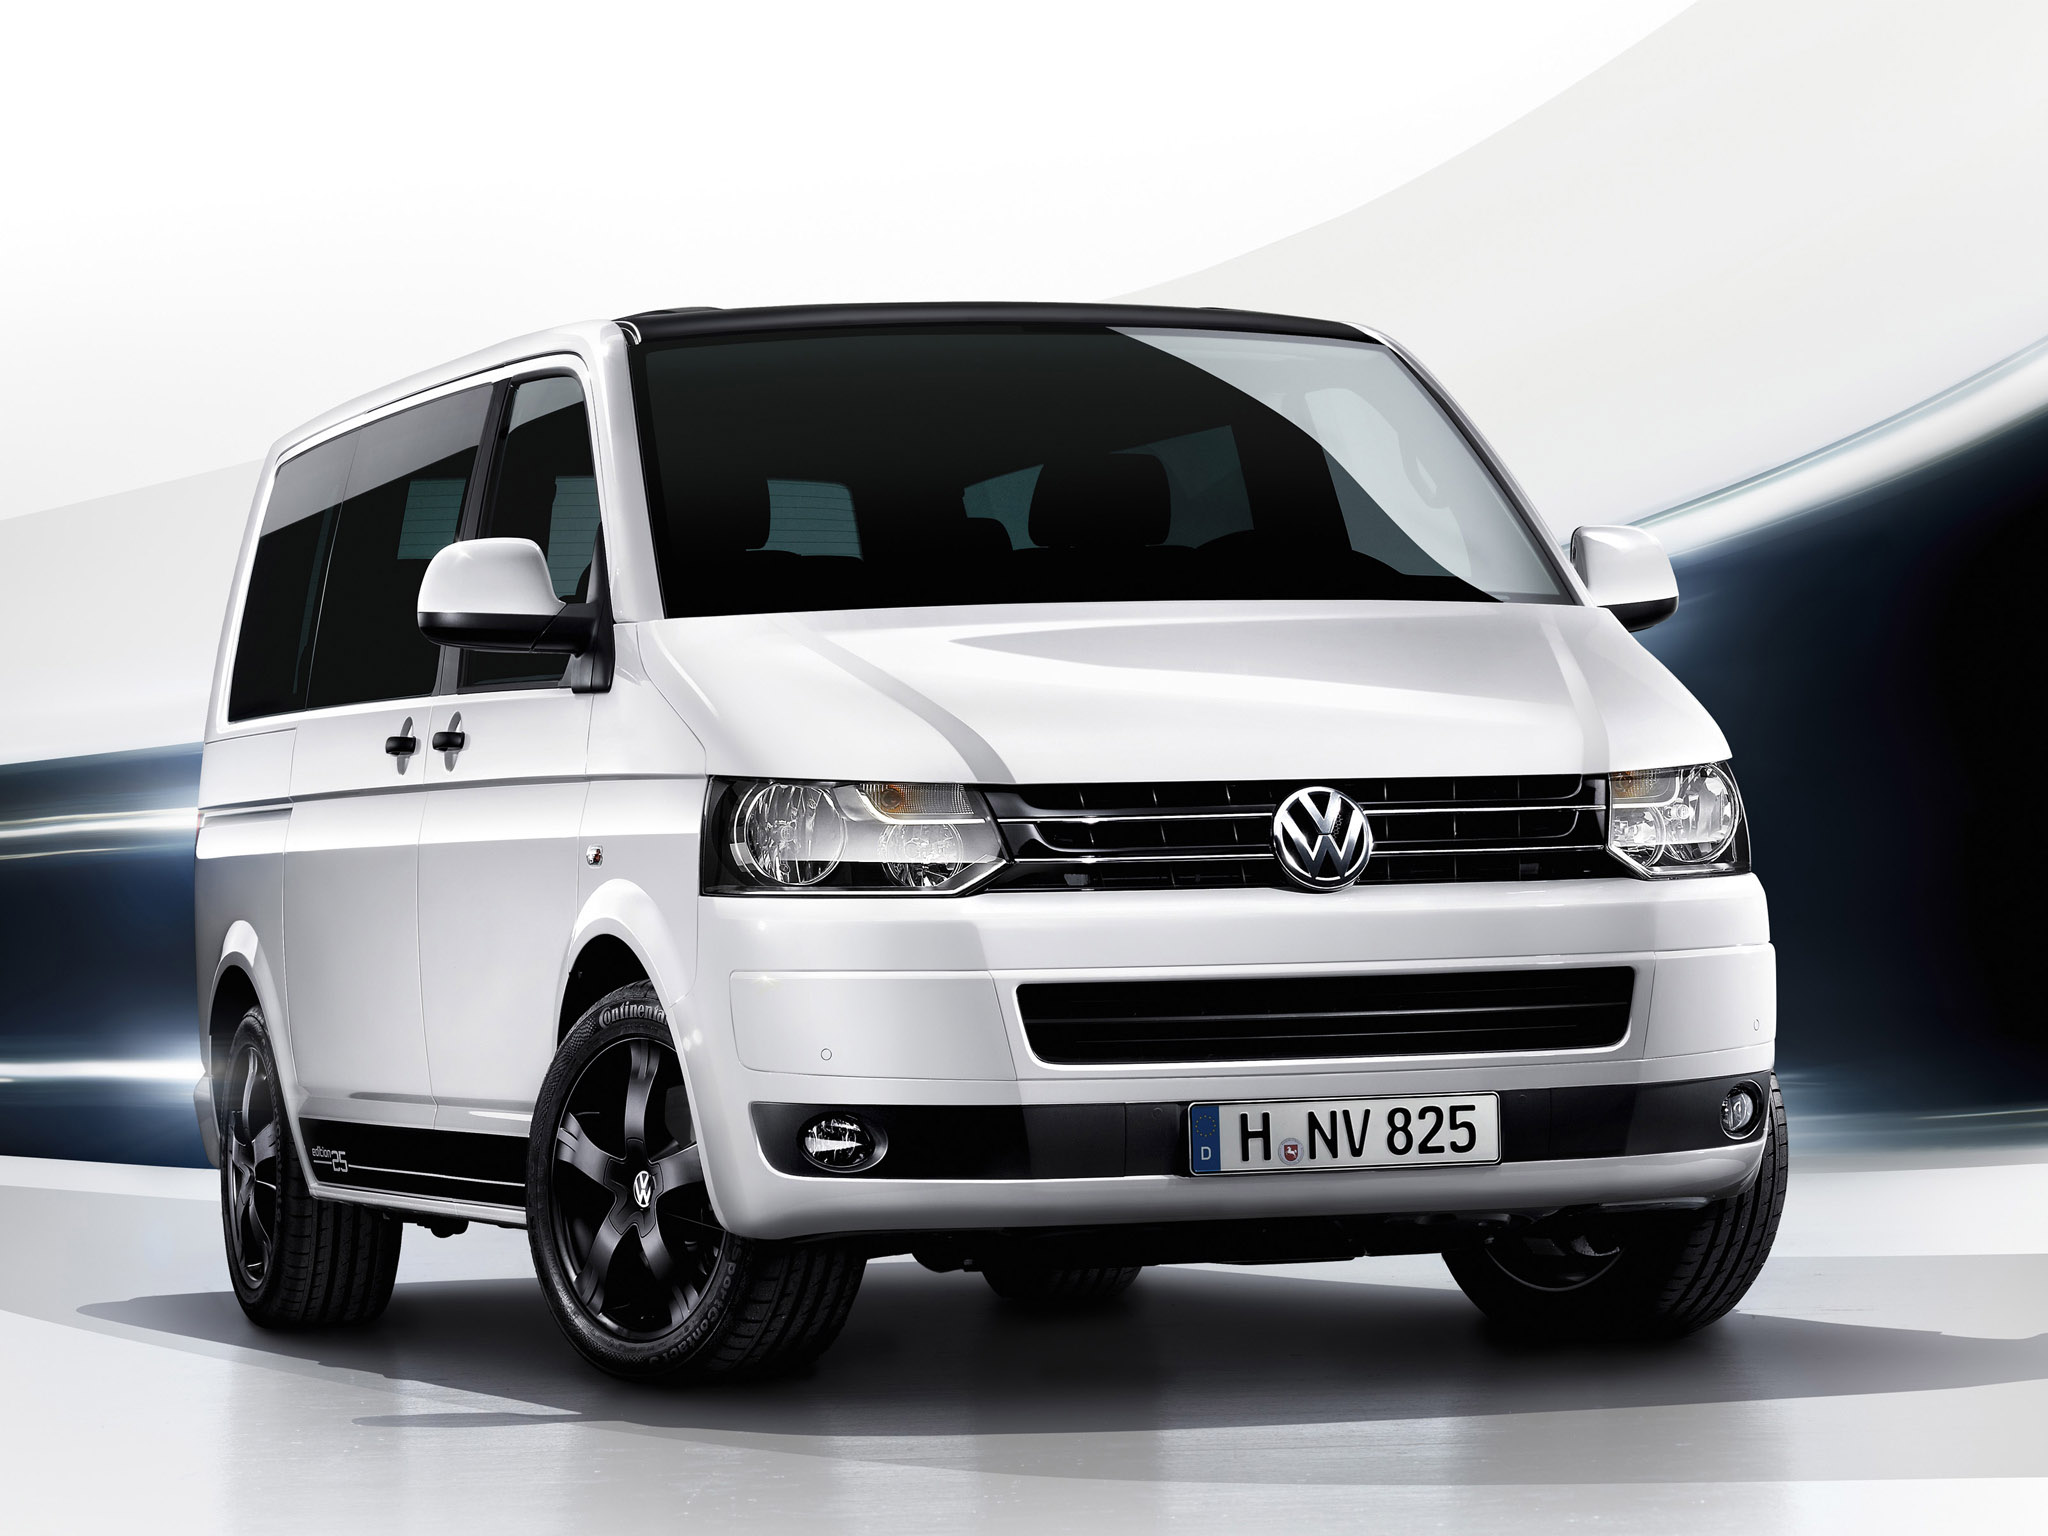 volkswagen t5 multivan edition 25 2010 volkswagen t5 multivan edition 25 2010 photo 04 car in. Black Bedroom Furniture Sets. Home Design Ideas